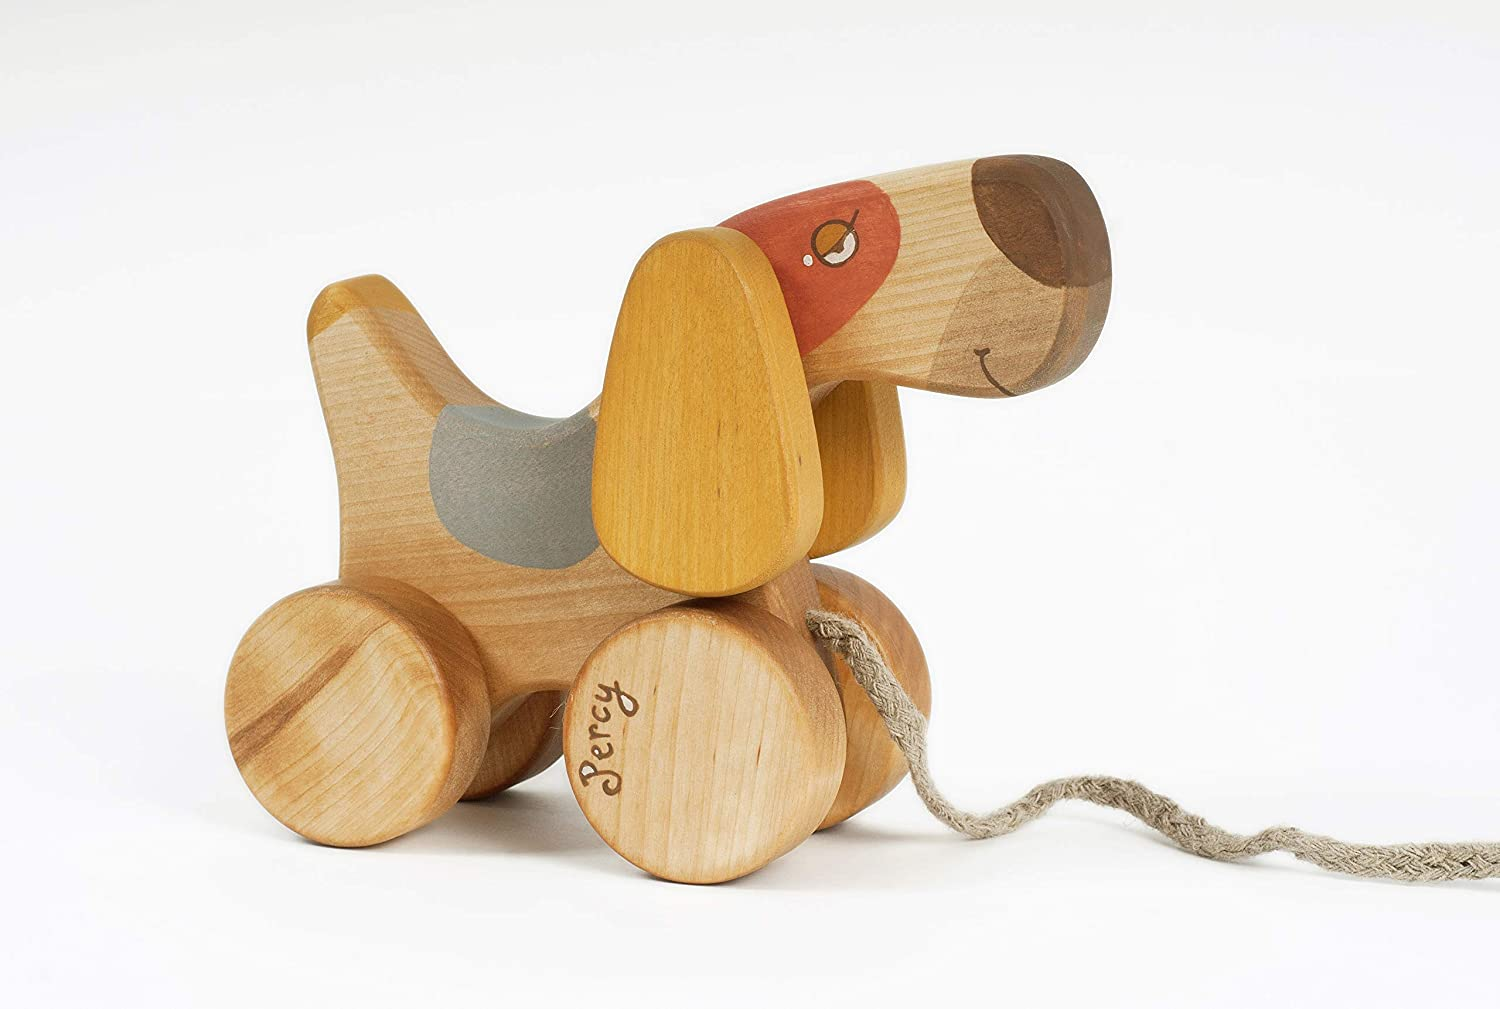 Pull Toy Dog for Toddler, Handmade Wooden toys for 1 Year Old